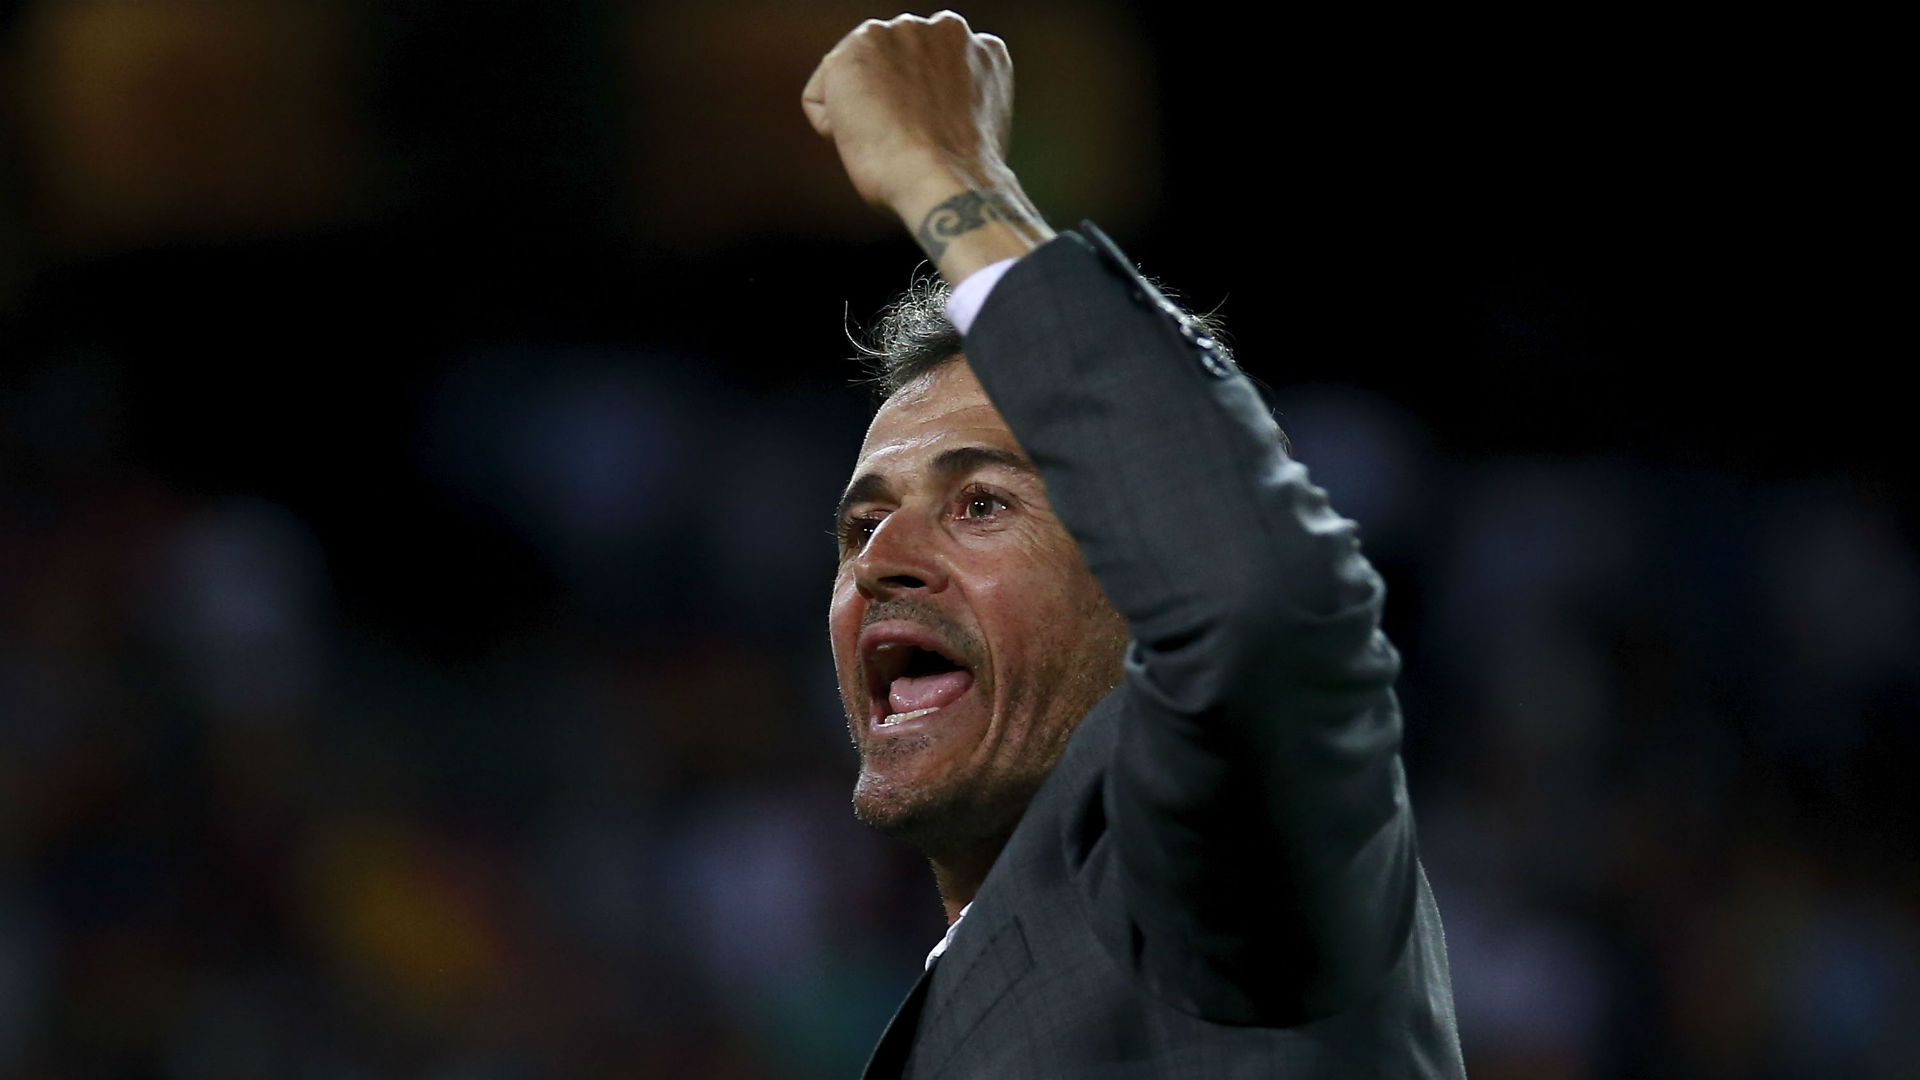 luis enrique - photo #15